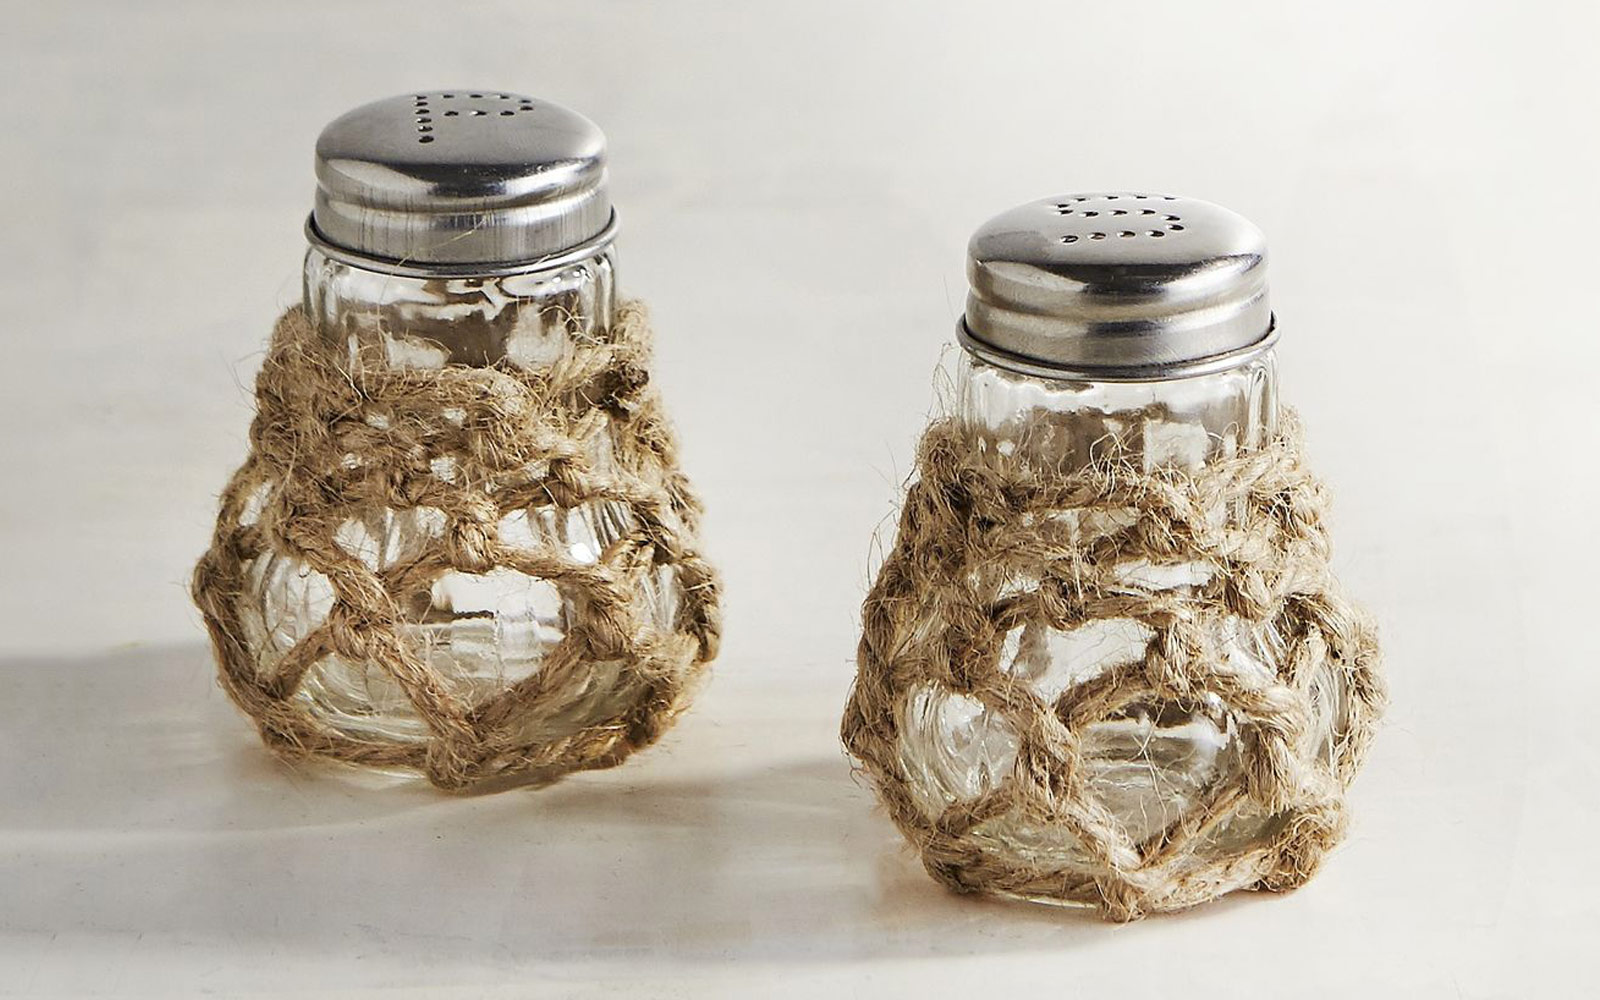 Rope Salt and Pepper Shakers